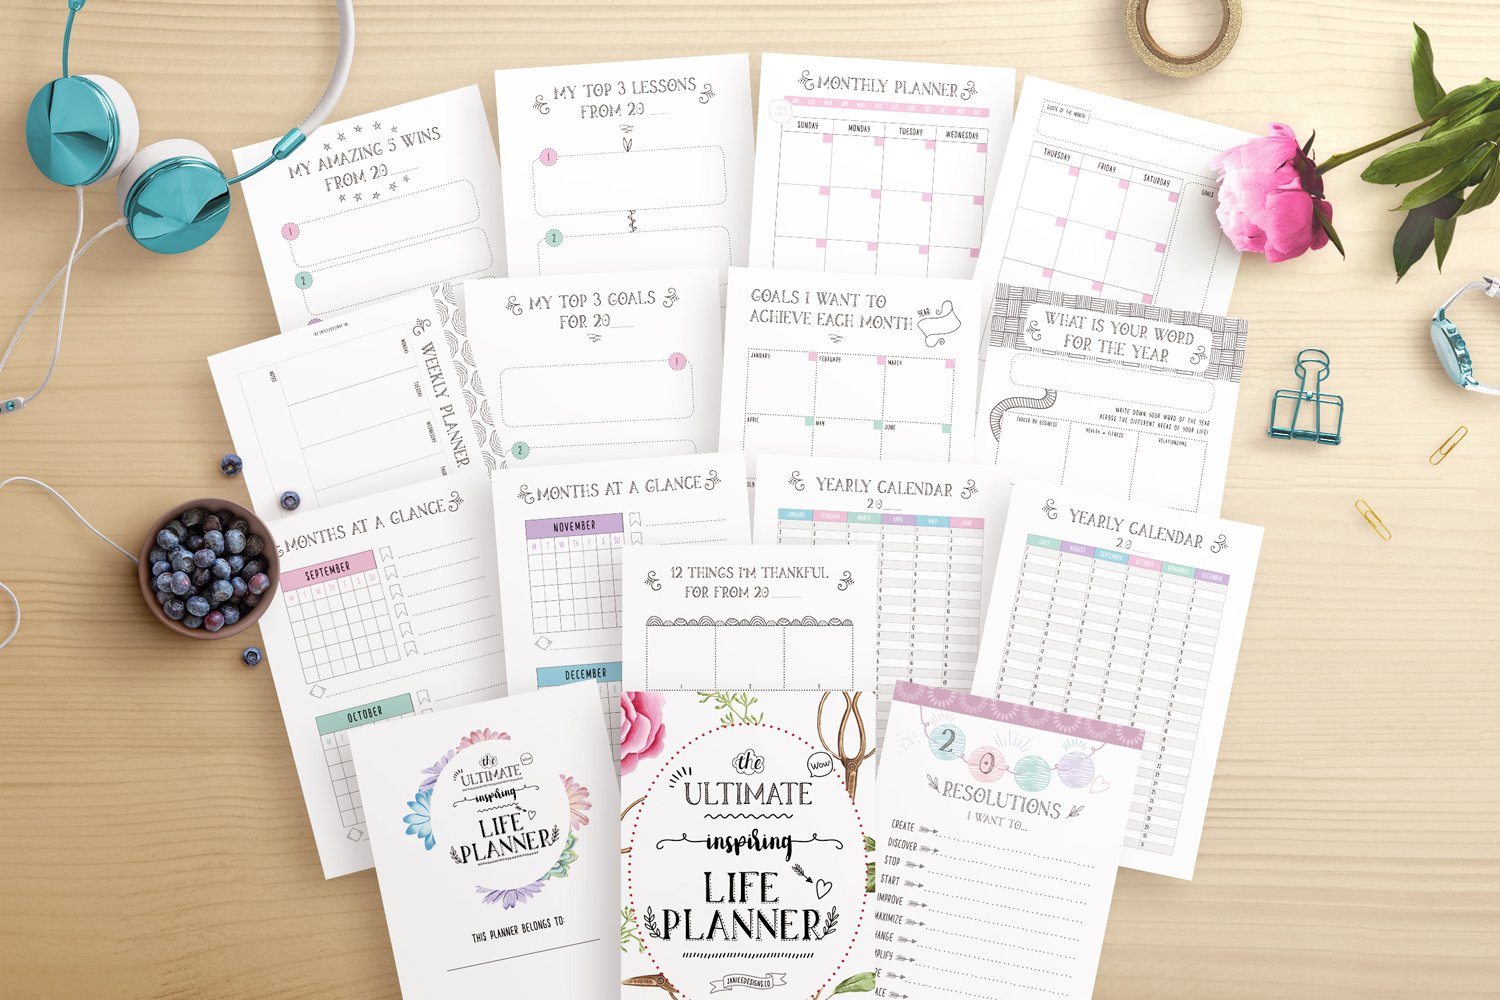 The Ultimate Inspiring Life Planner